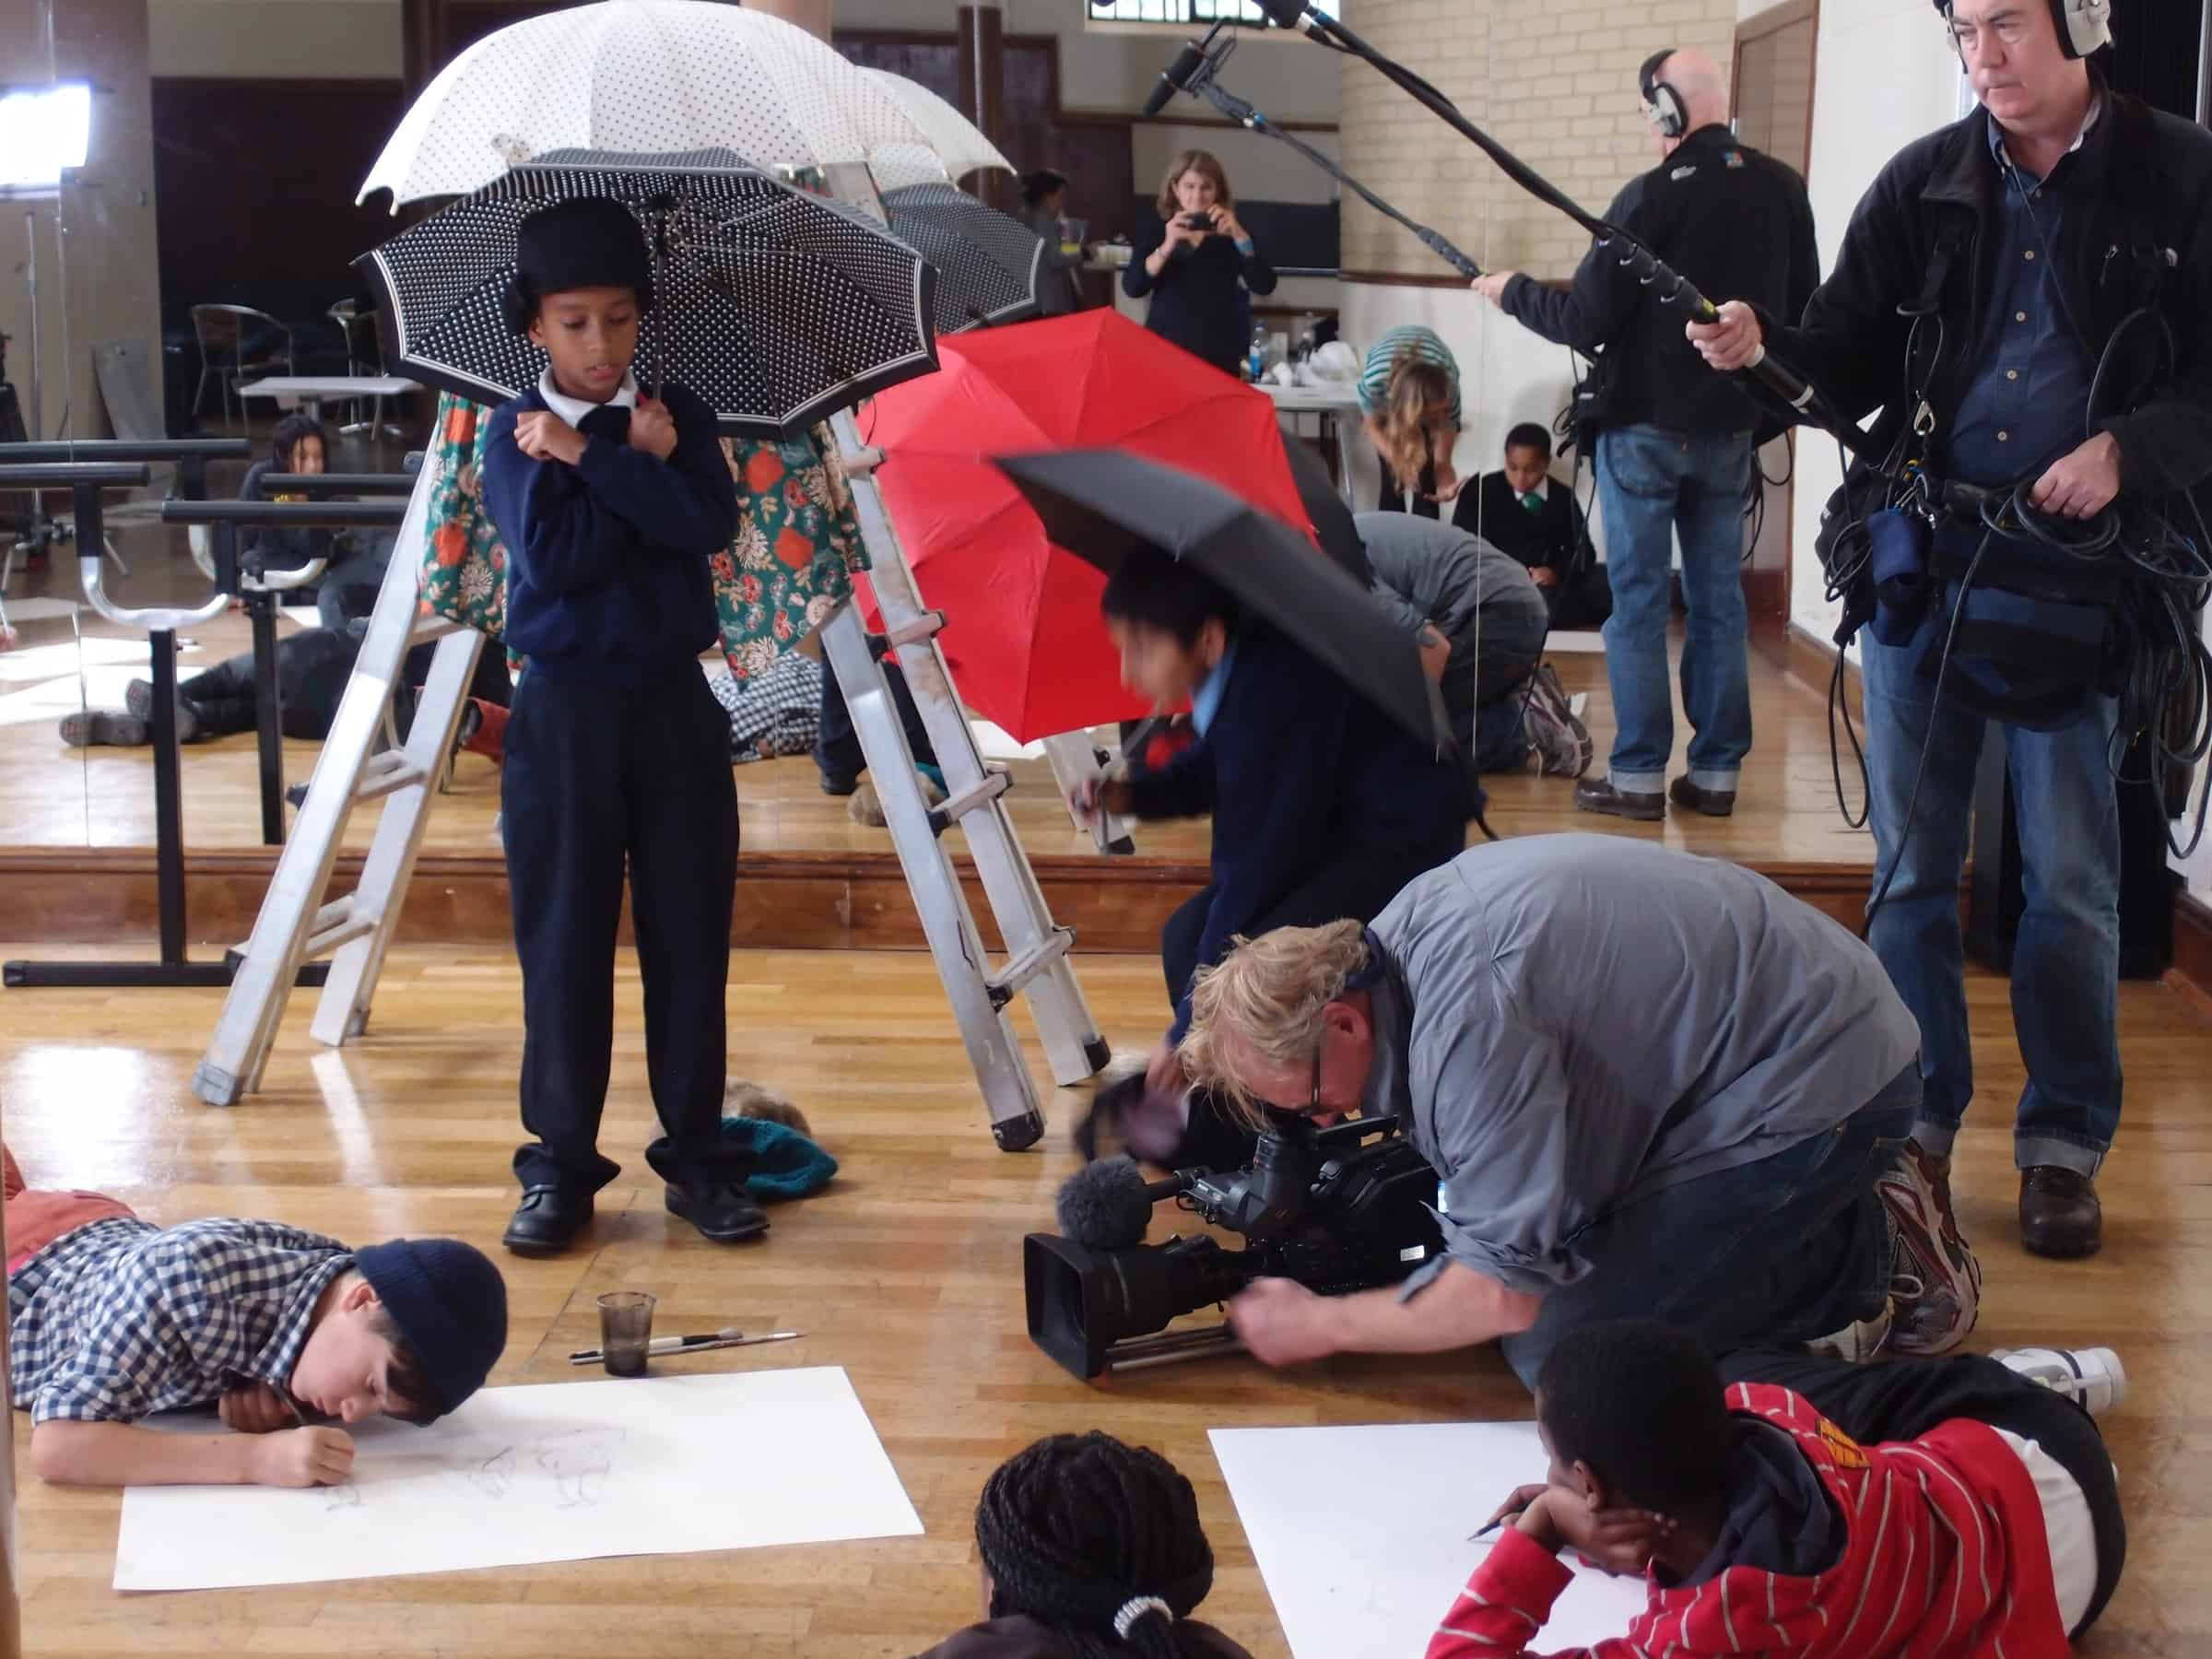 Filming at The Prince's Drawing School After School Club